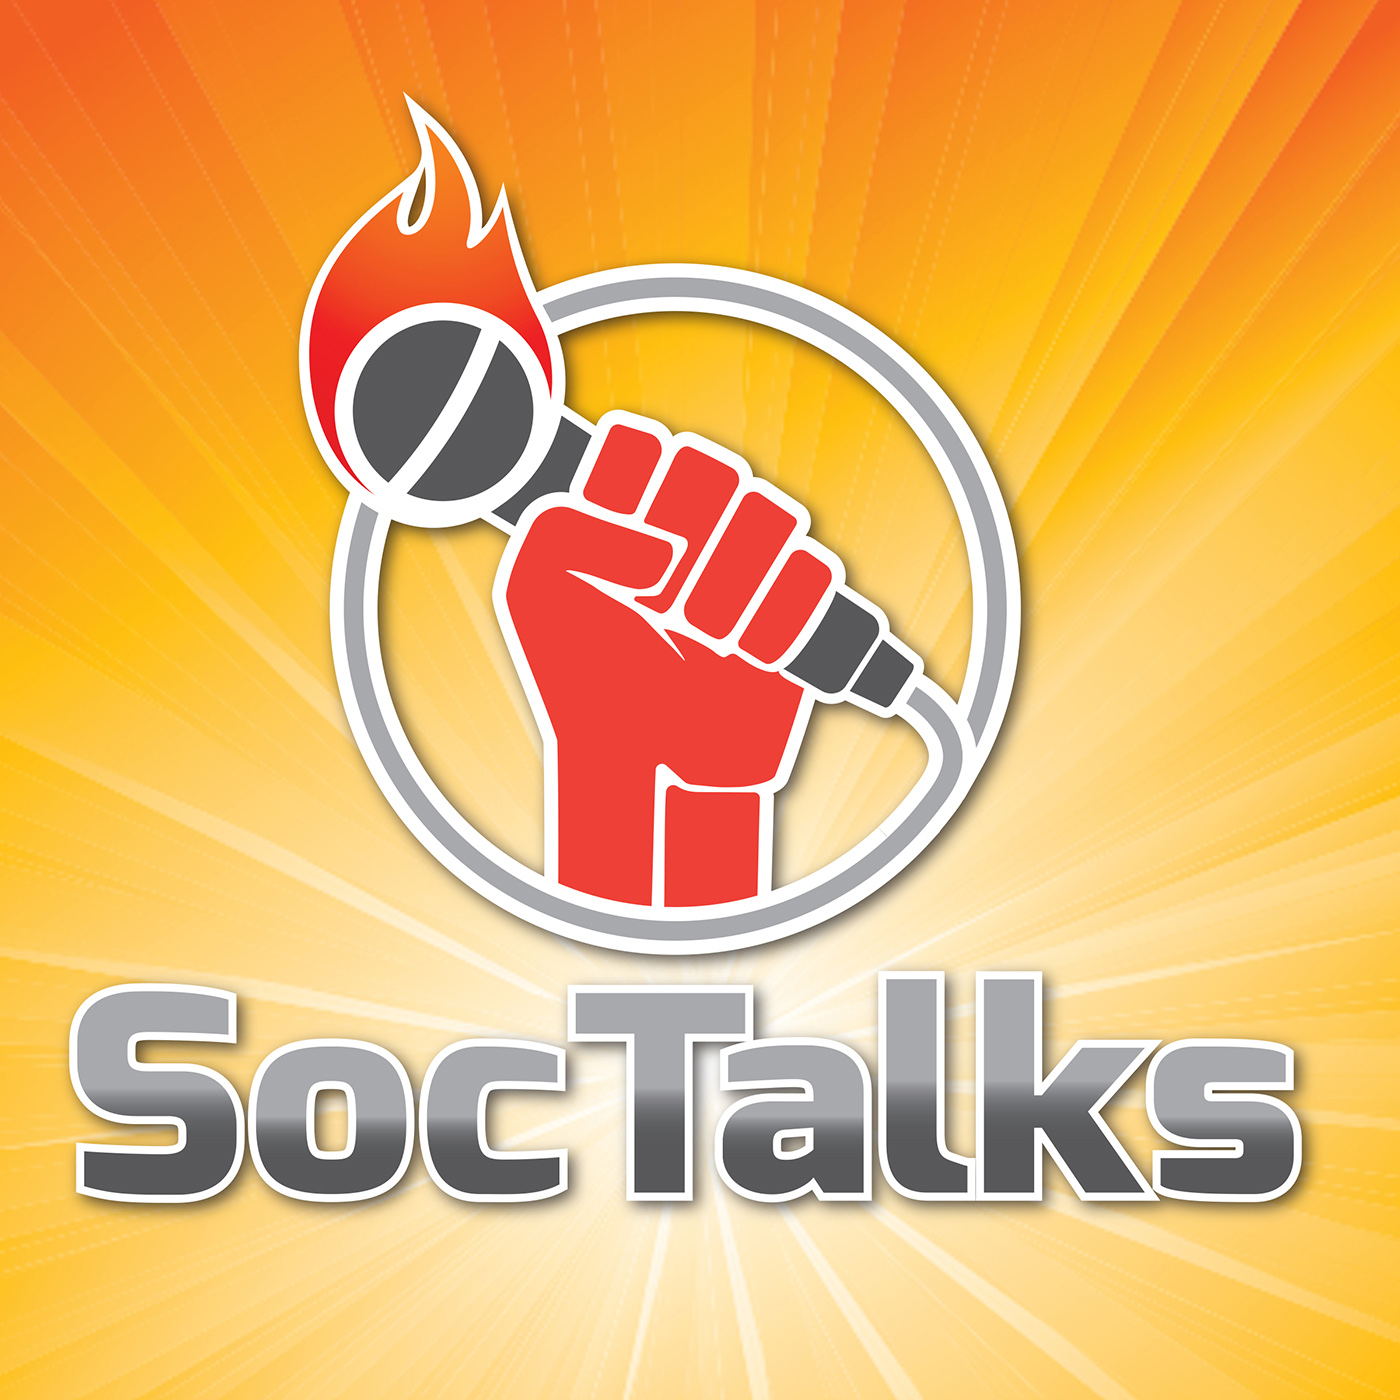 SocTalks Episode 018 show art